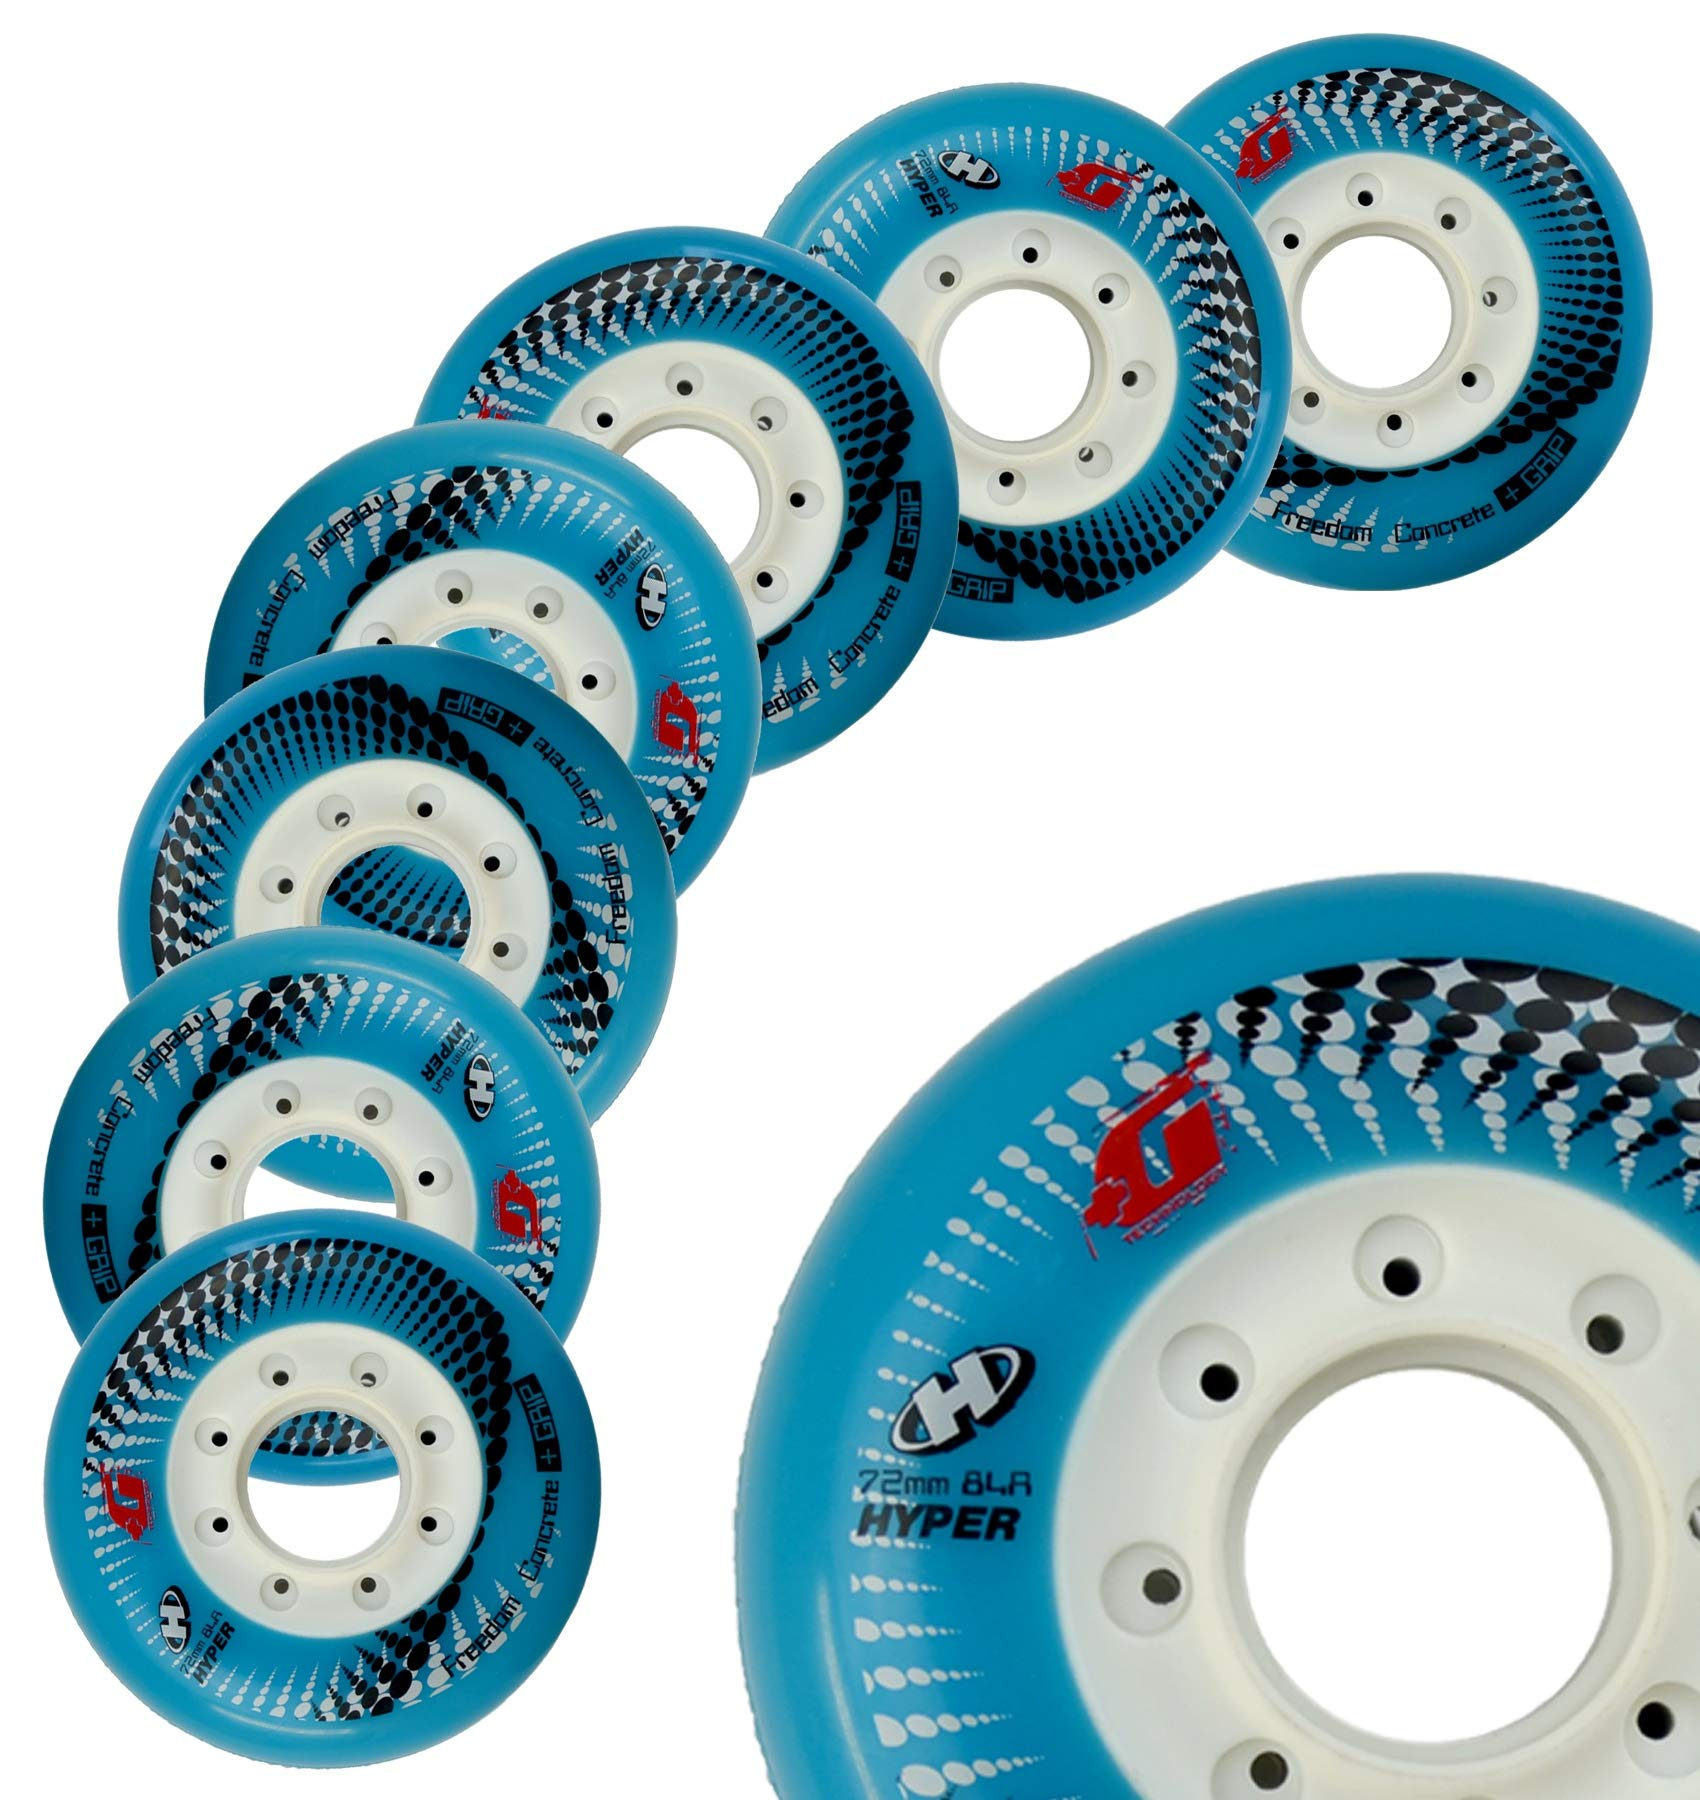 Inline Skate Wheels Hyper Concrete +G - 8 Wheels - 84A - Sizes: 72MM, 76MM, 80MM - Freeride, Slalom, Fitness, Urban - Colors: White, Black, Orange, Green, Cyan, Red (Cyan, 72MM)